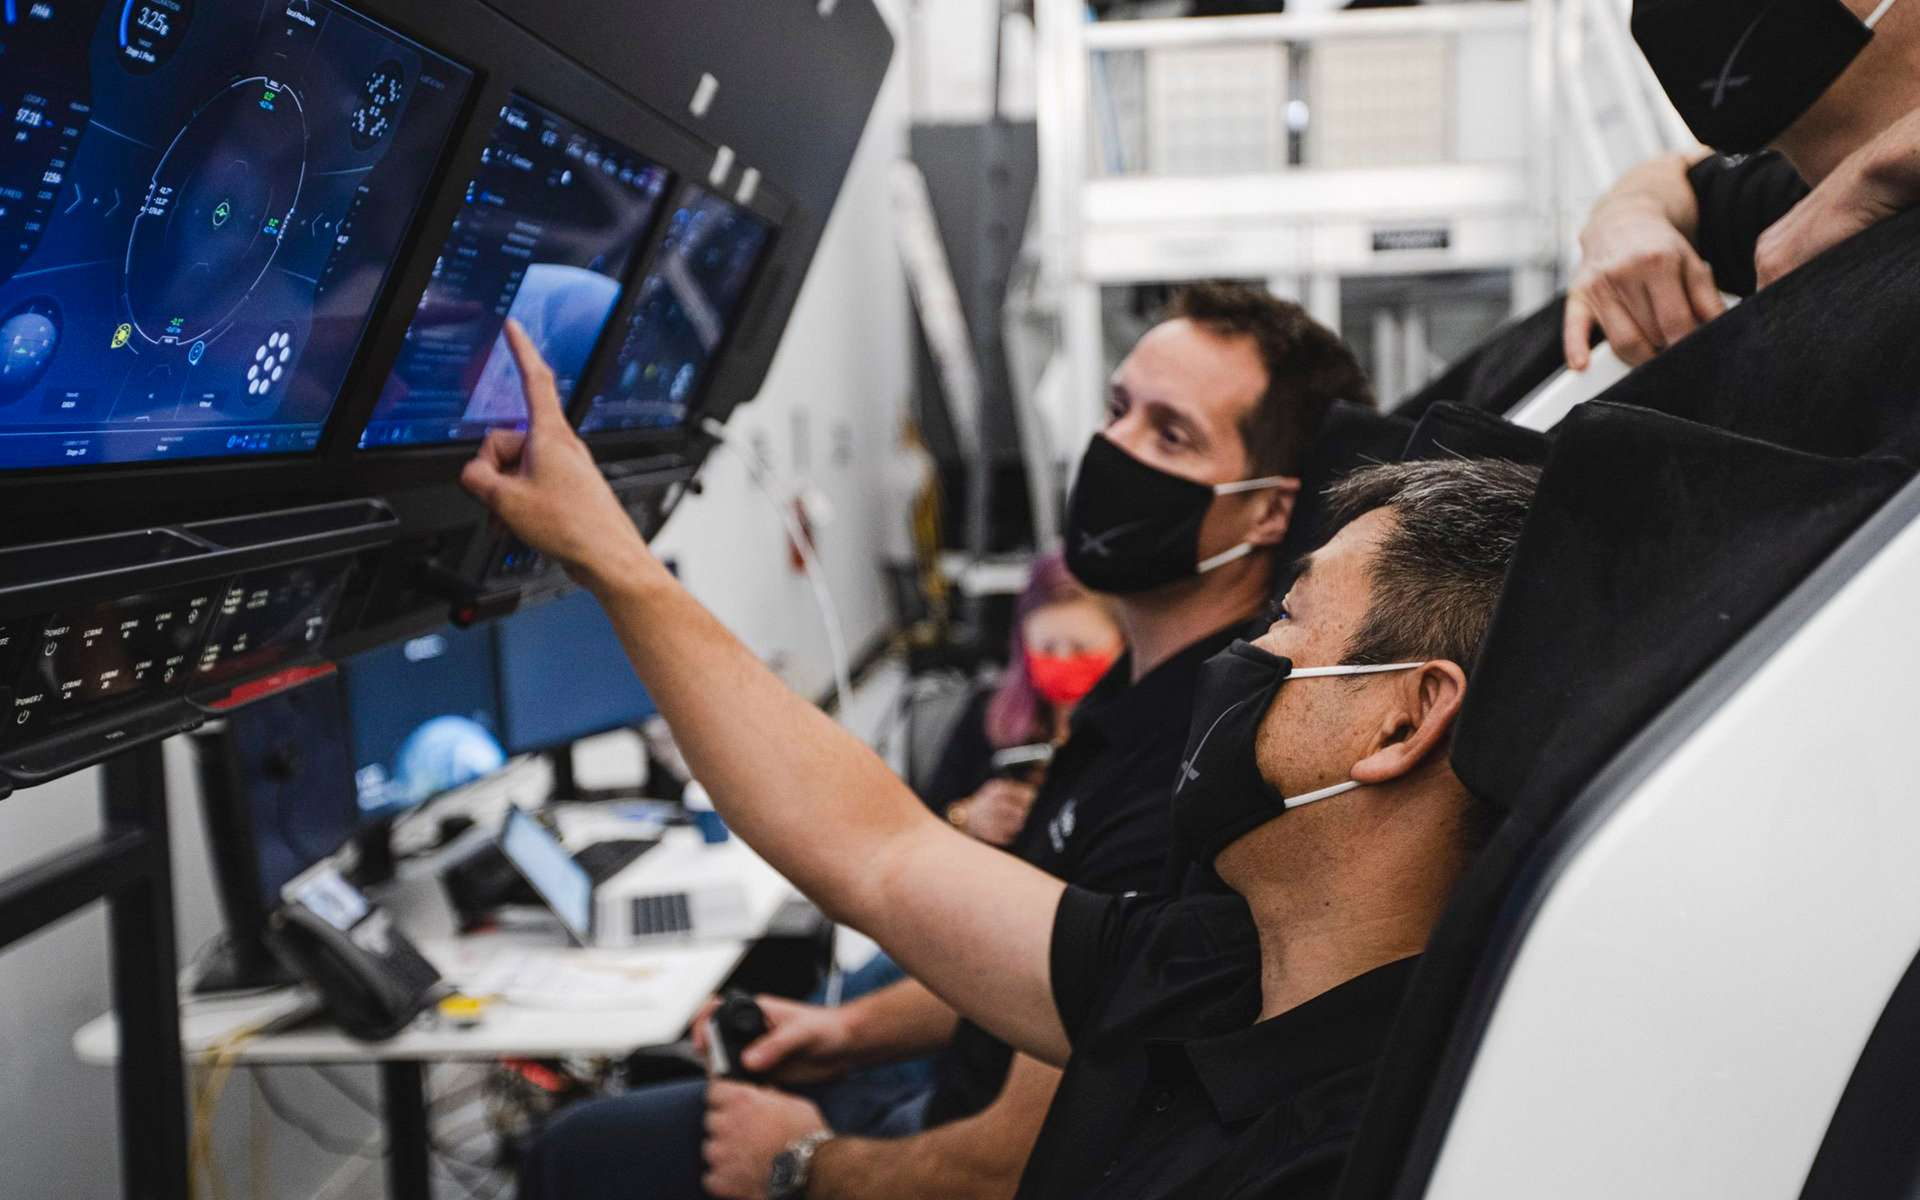 Entraînement de Thomas Pesquet à bord du Crew Dragon de SpaceX. Le spationaute de l'ESA l'utilisera pour sa seconde mission à bord de la Station spatiale internationale. © ESA, Nasa